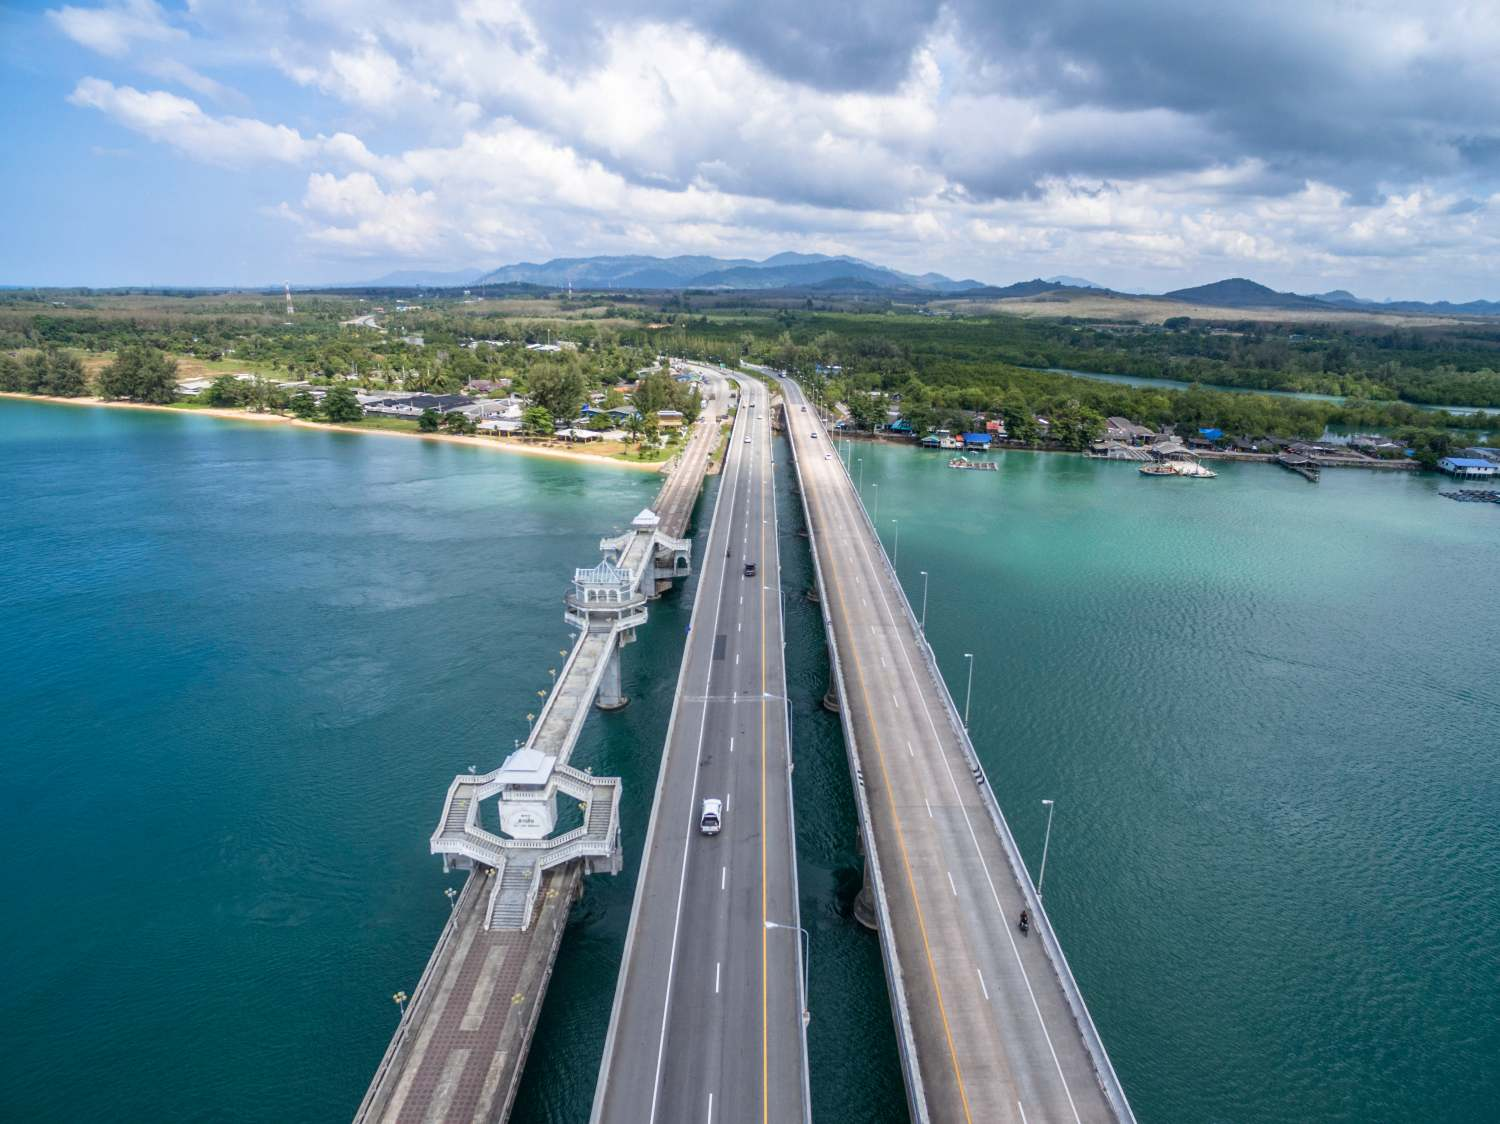 The Sarasin Bridge with the Phang Nga province on the other side, the mainland of Thailand